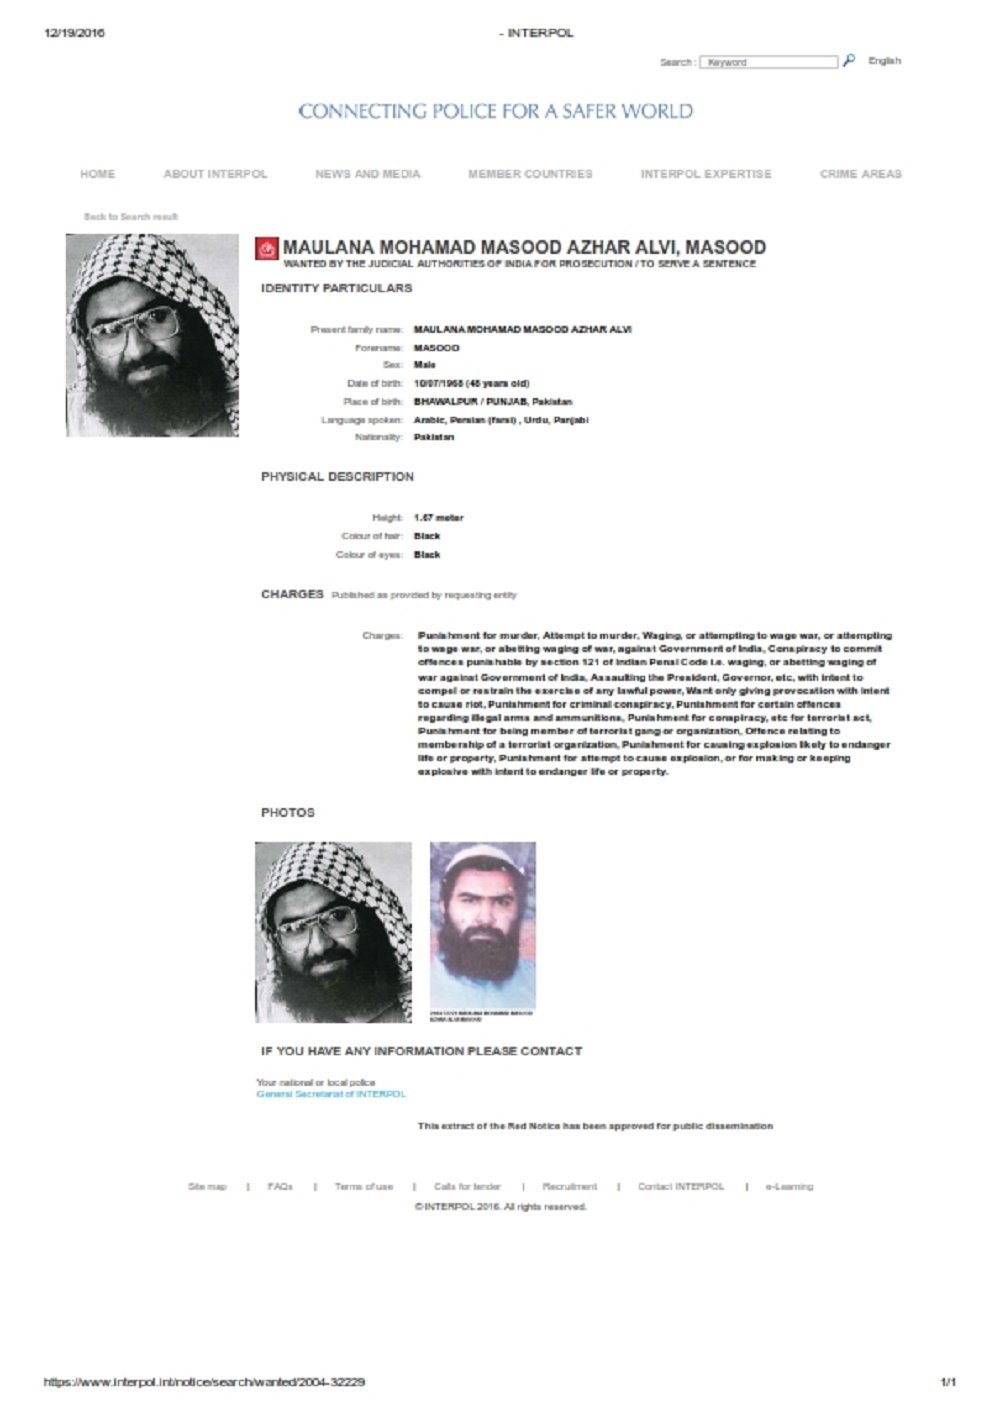 Maulana Masood Azhar Red Warrant